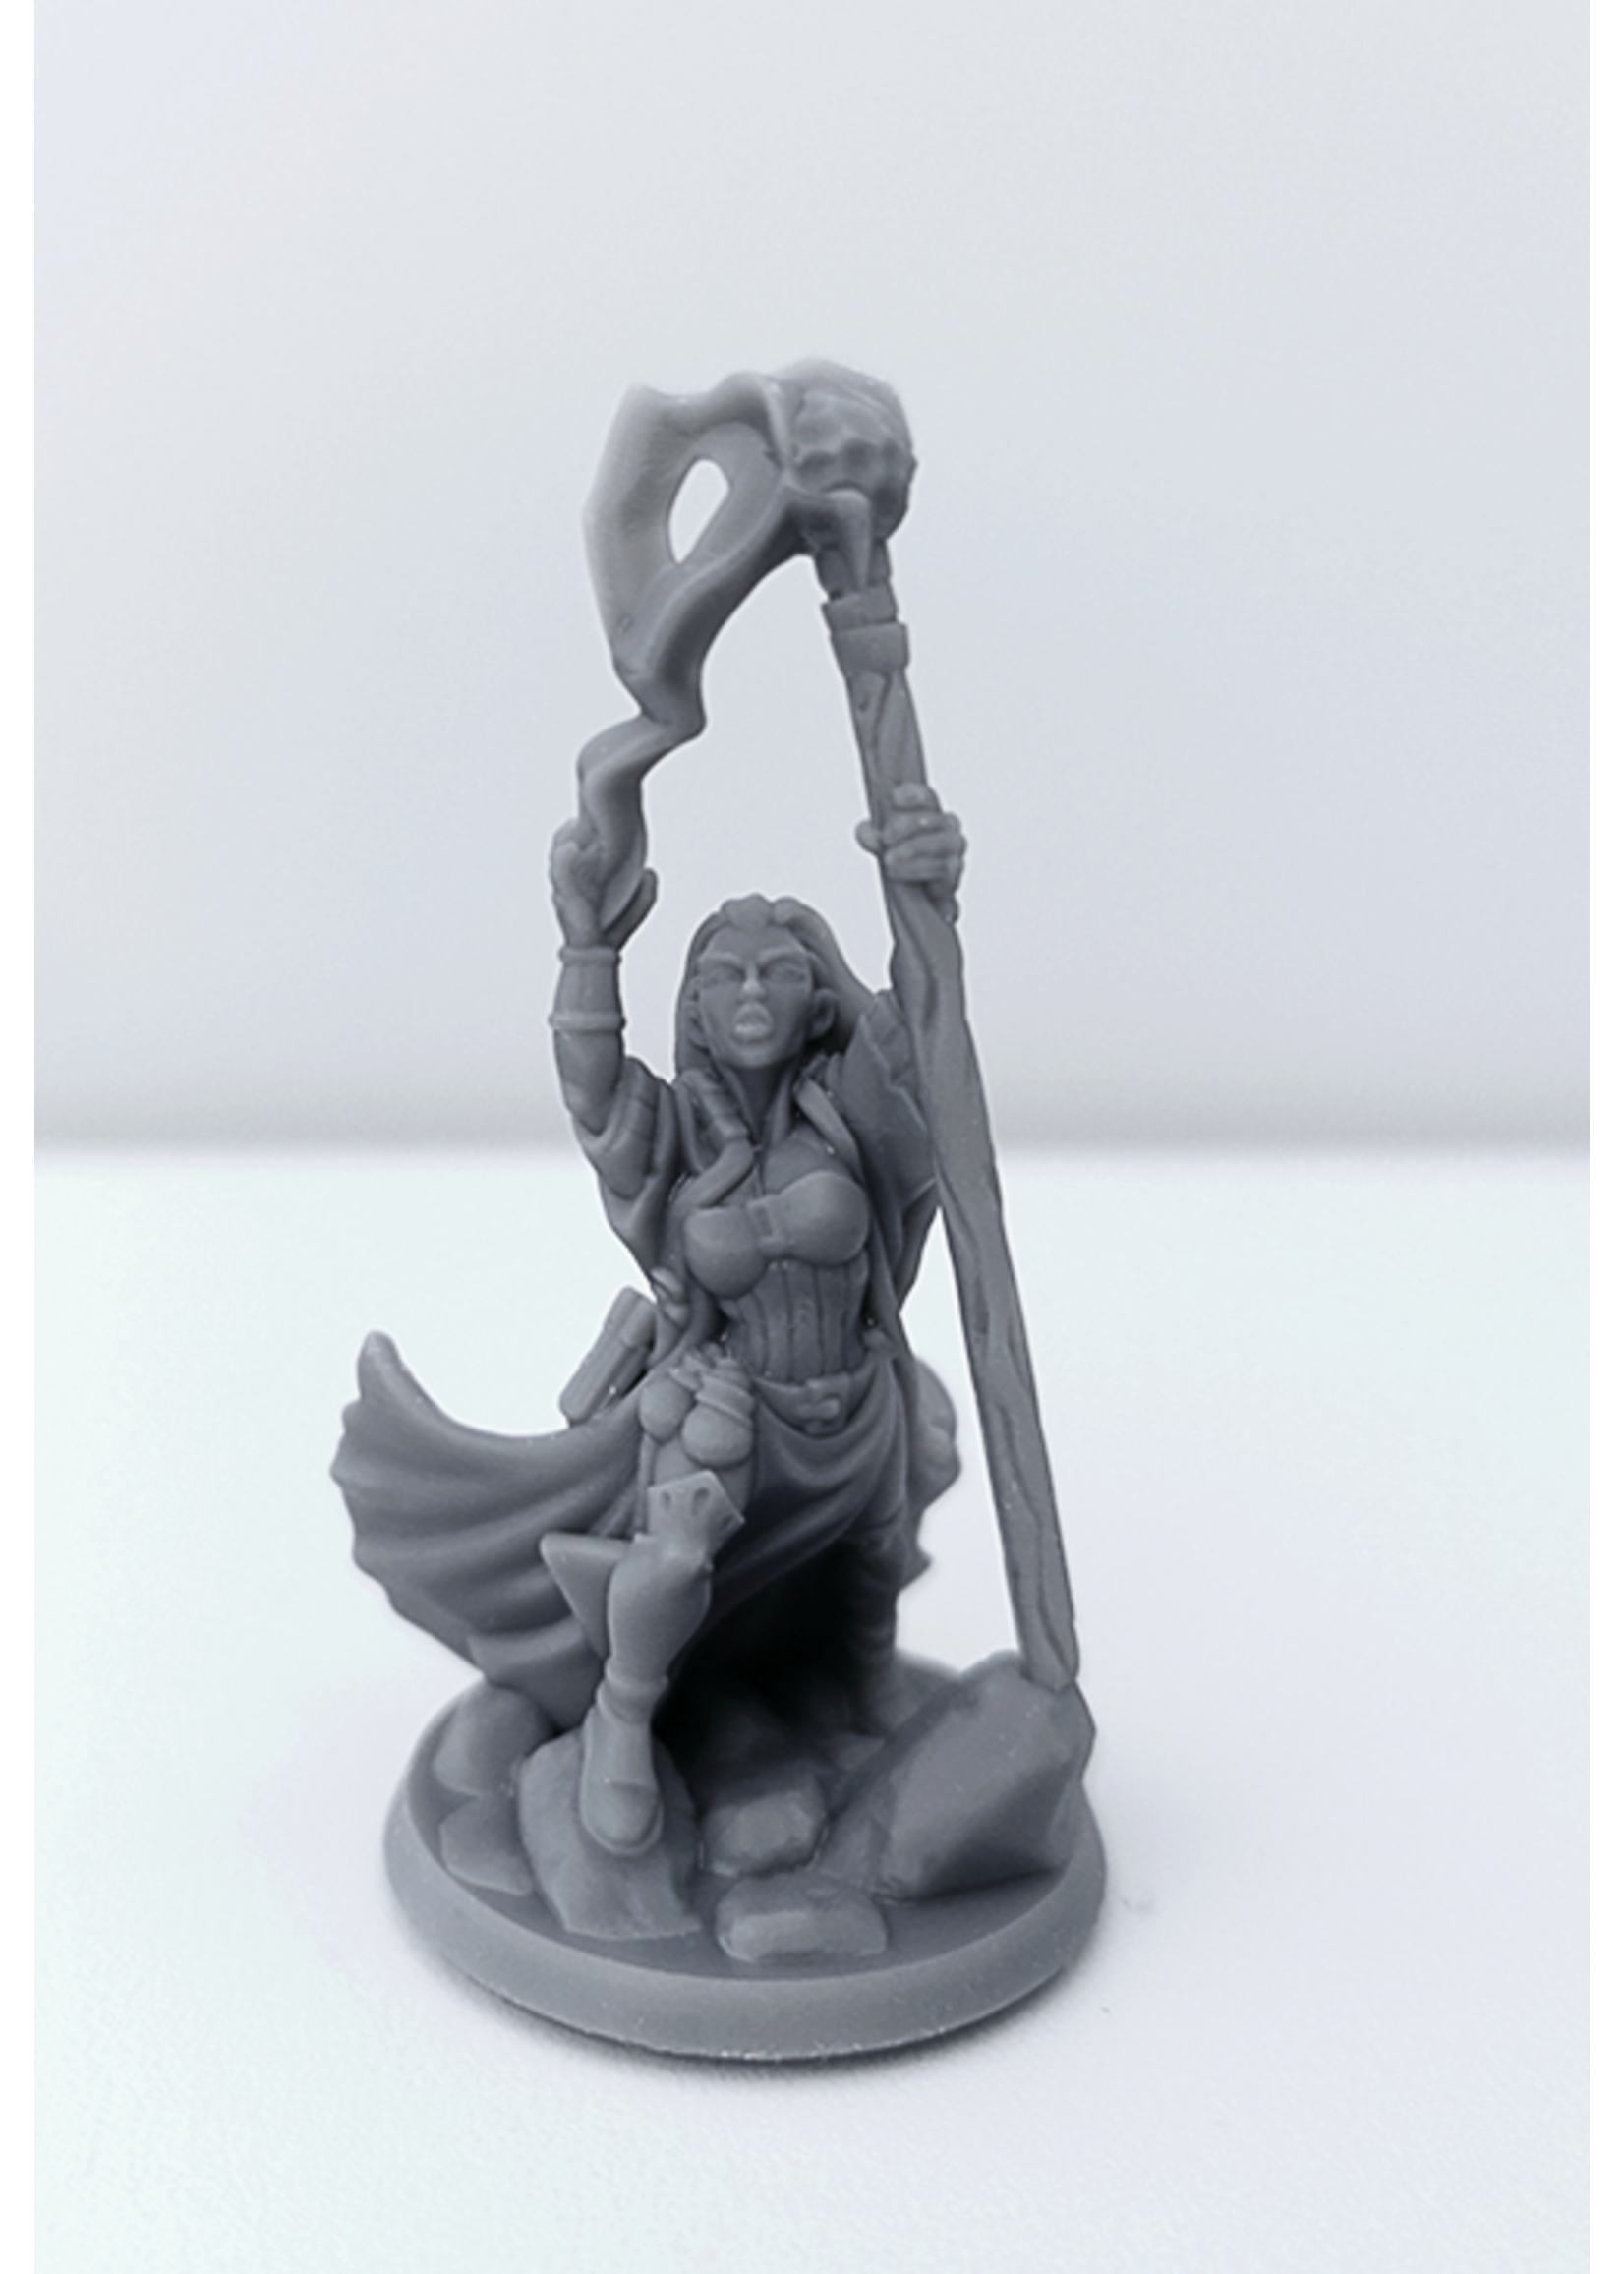 3D Printed Miniature - Mage Female 01 - Dungeons & Dragons - Hero of the Realm KS